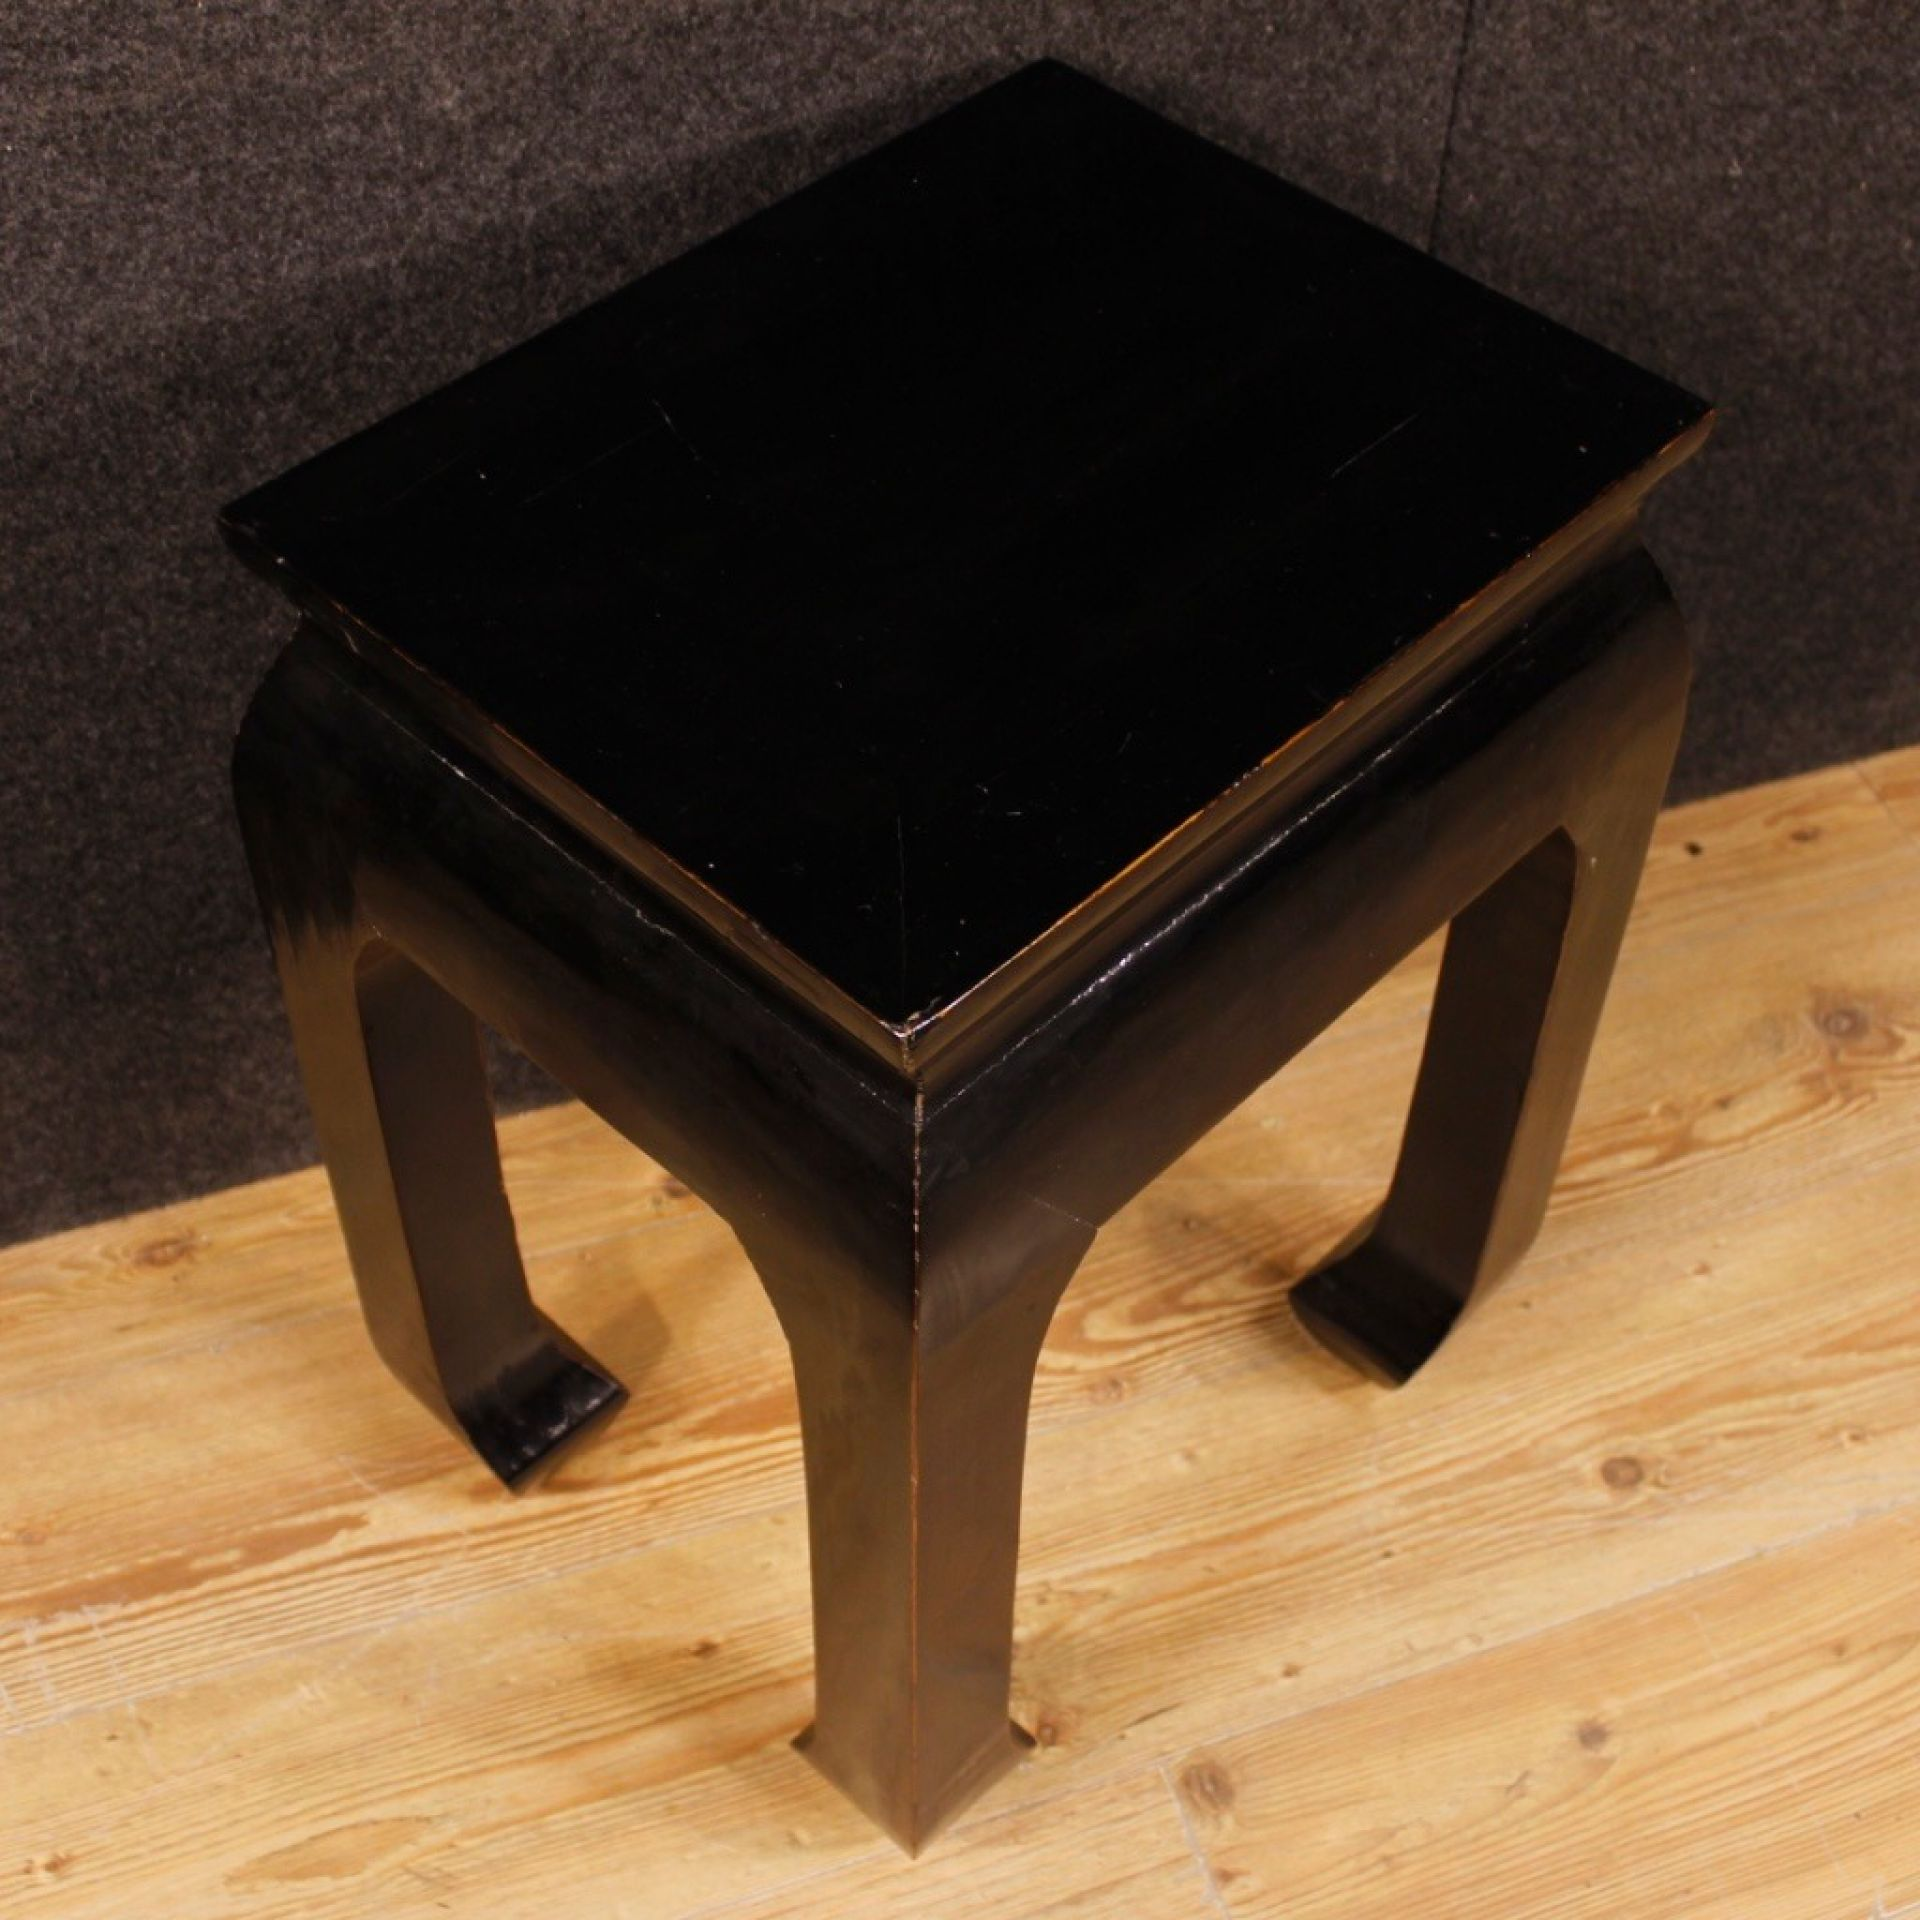 20th Century Black Lacquered Wood Chinese Coffee Table, 1980